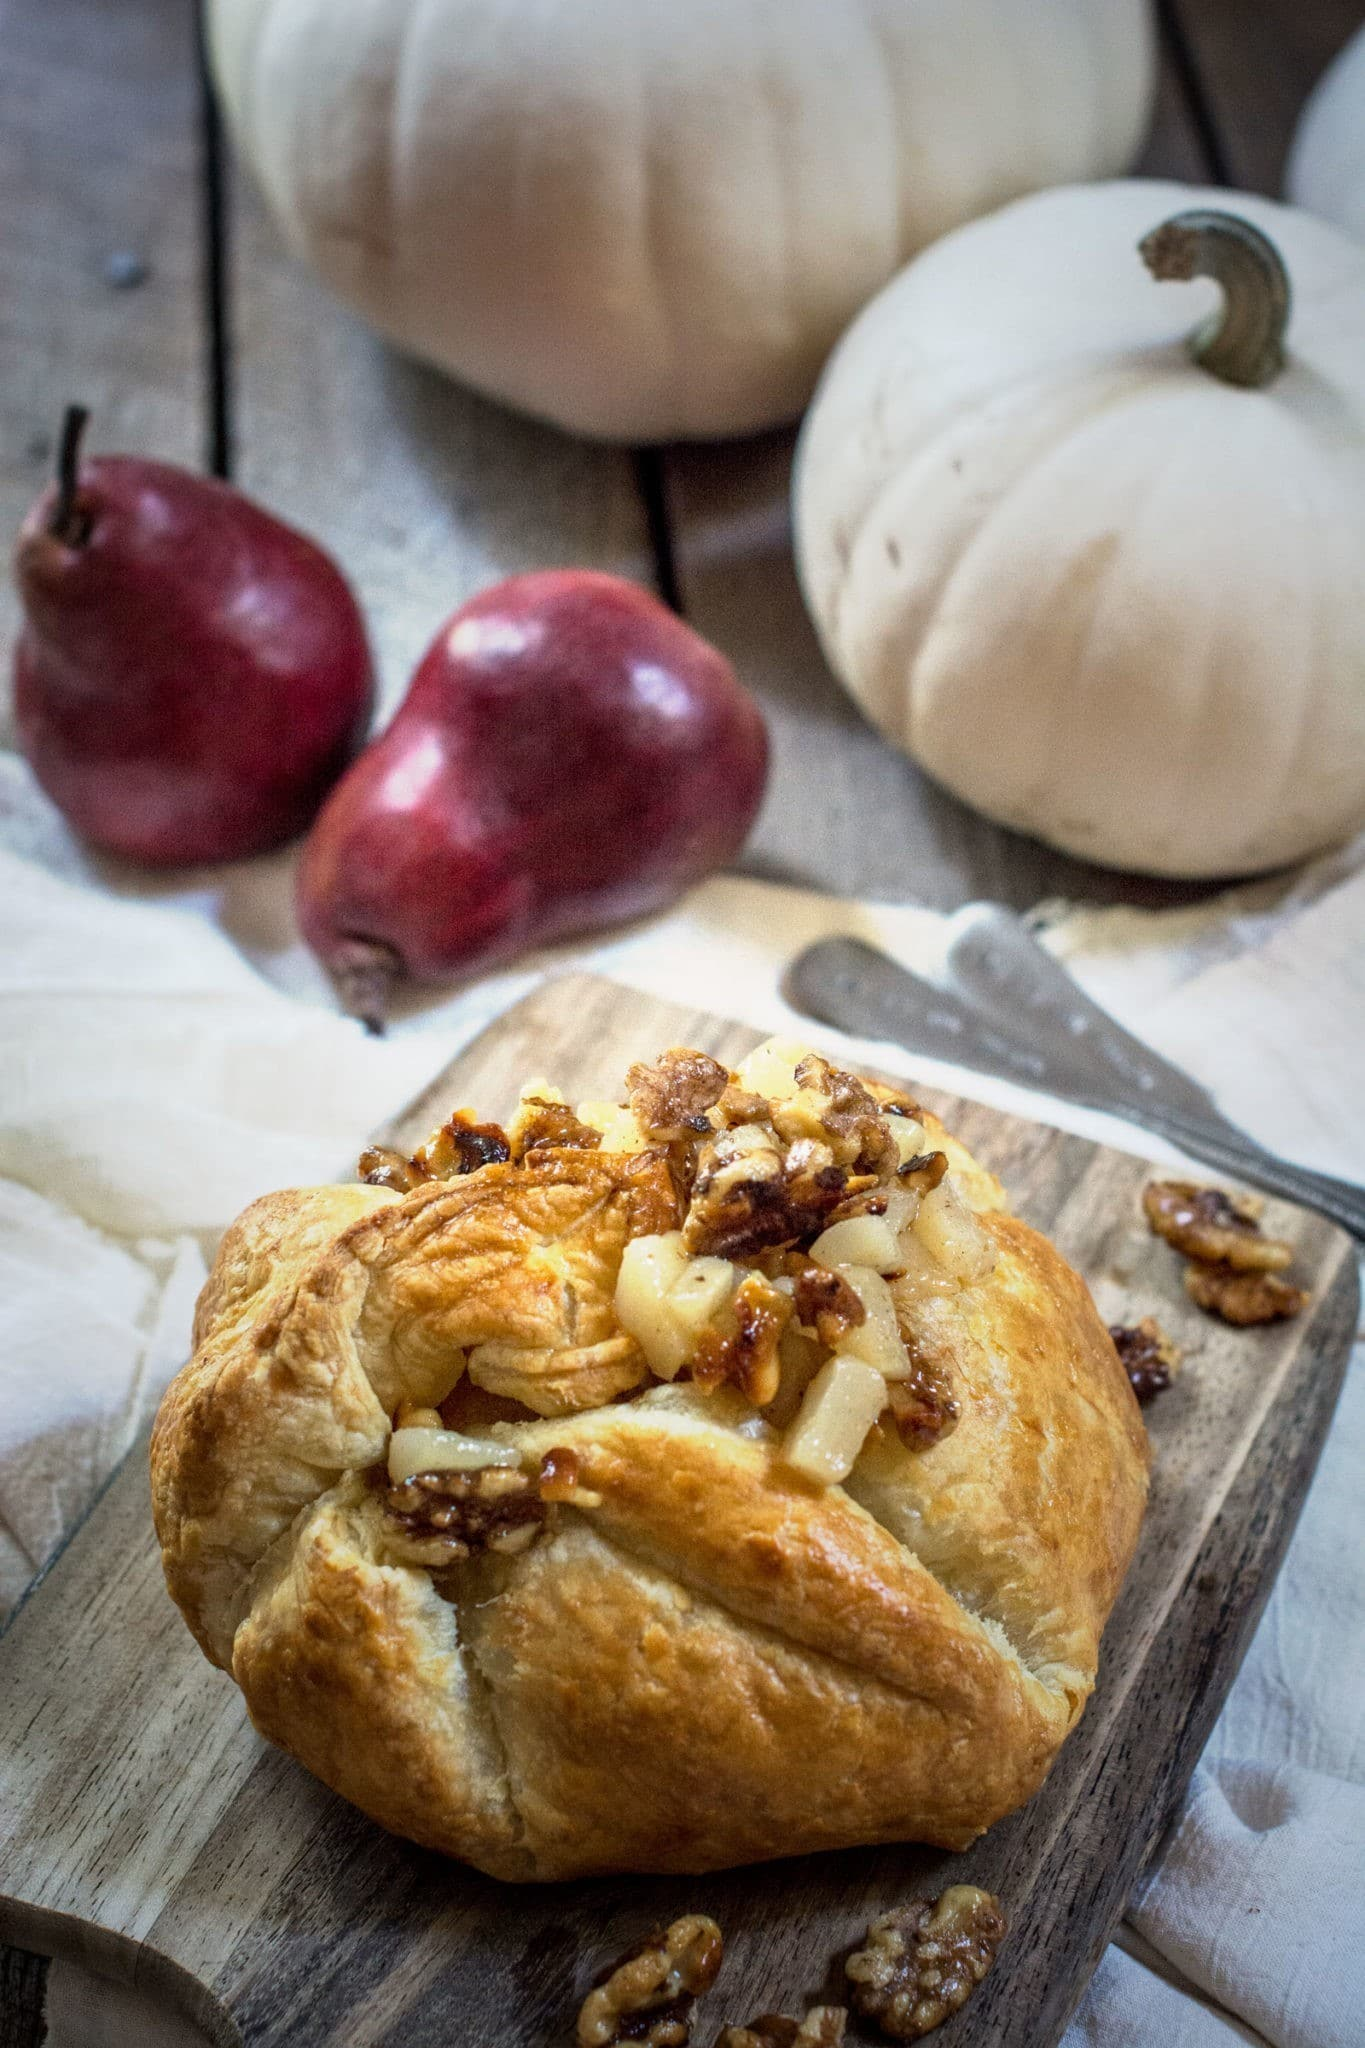 Baked Gouda with Pear Compote